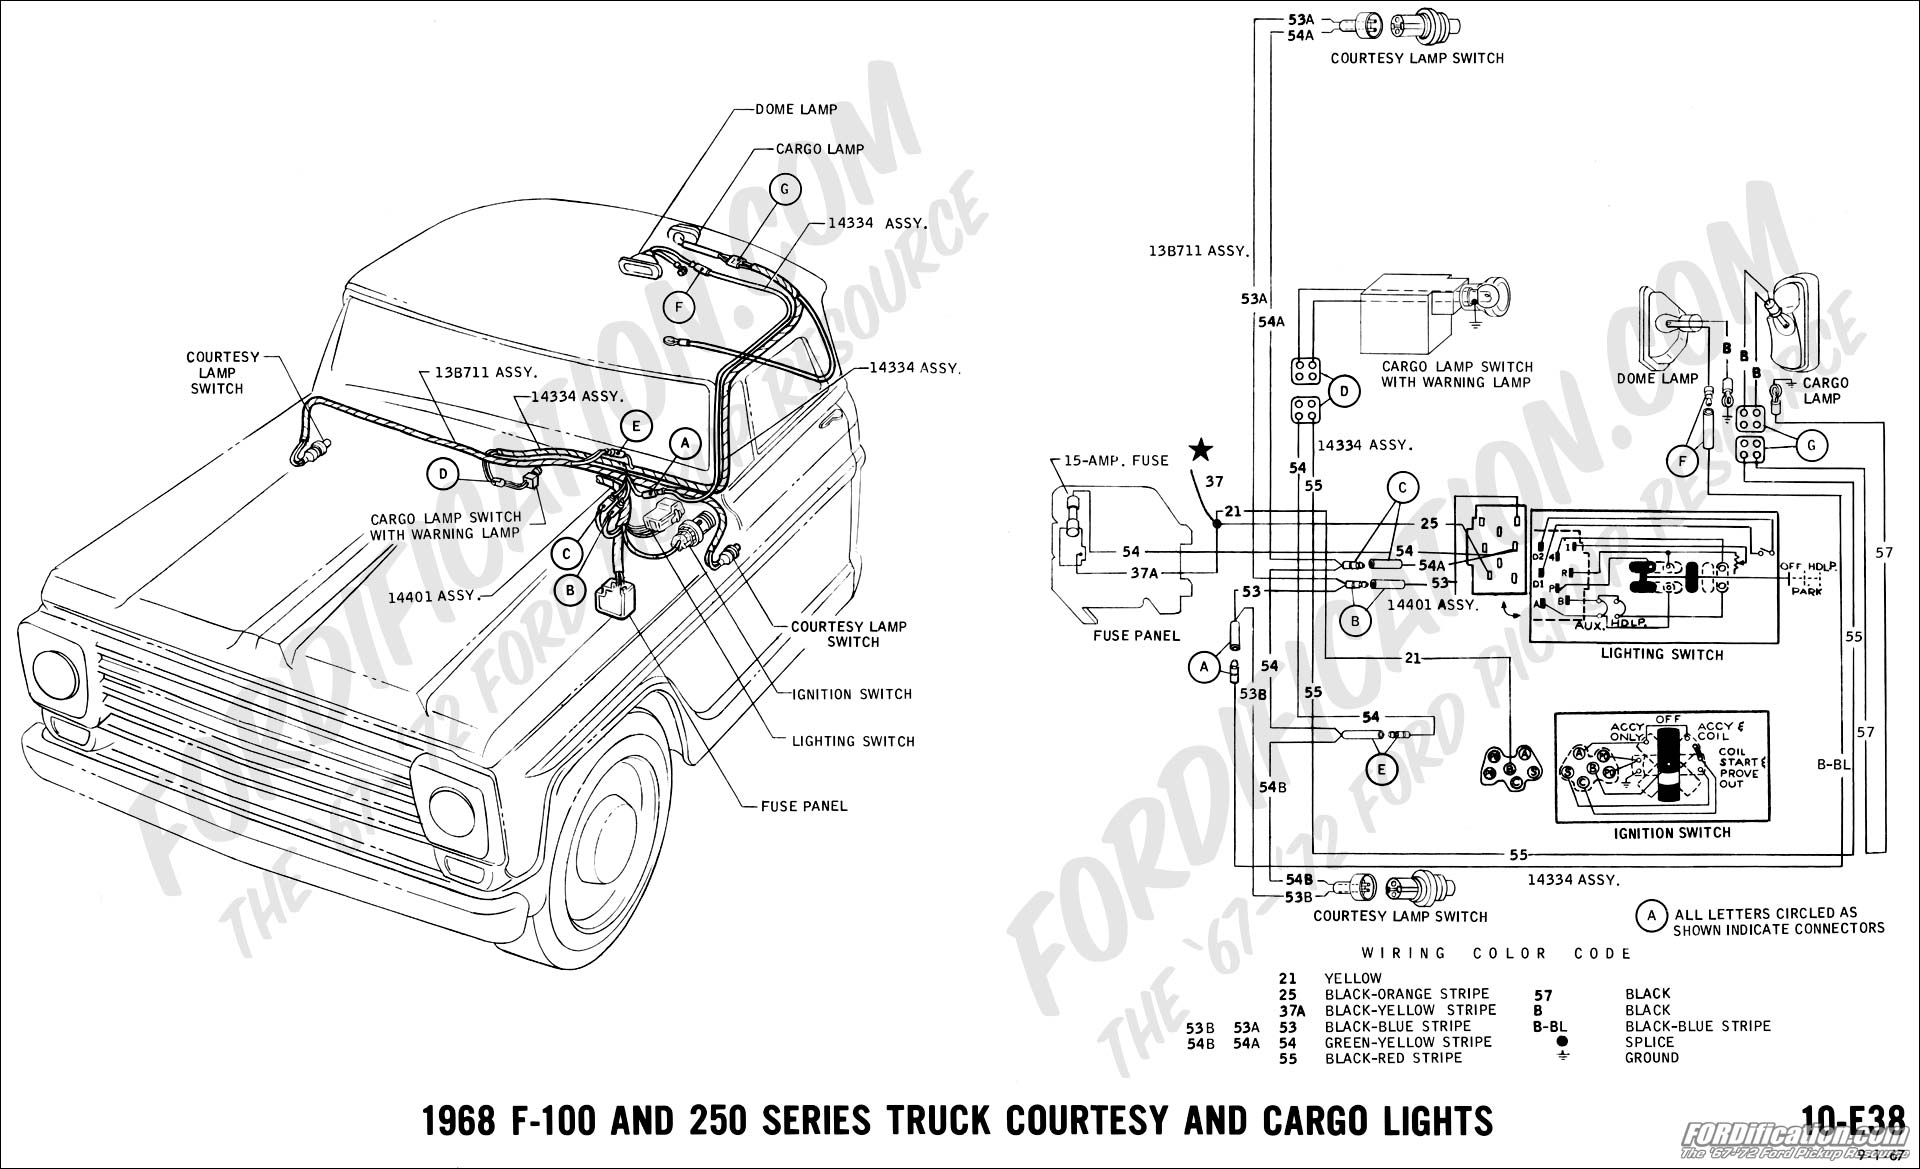 1968 f-100 and f-250 courtesy and cargo lights